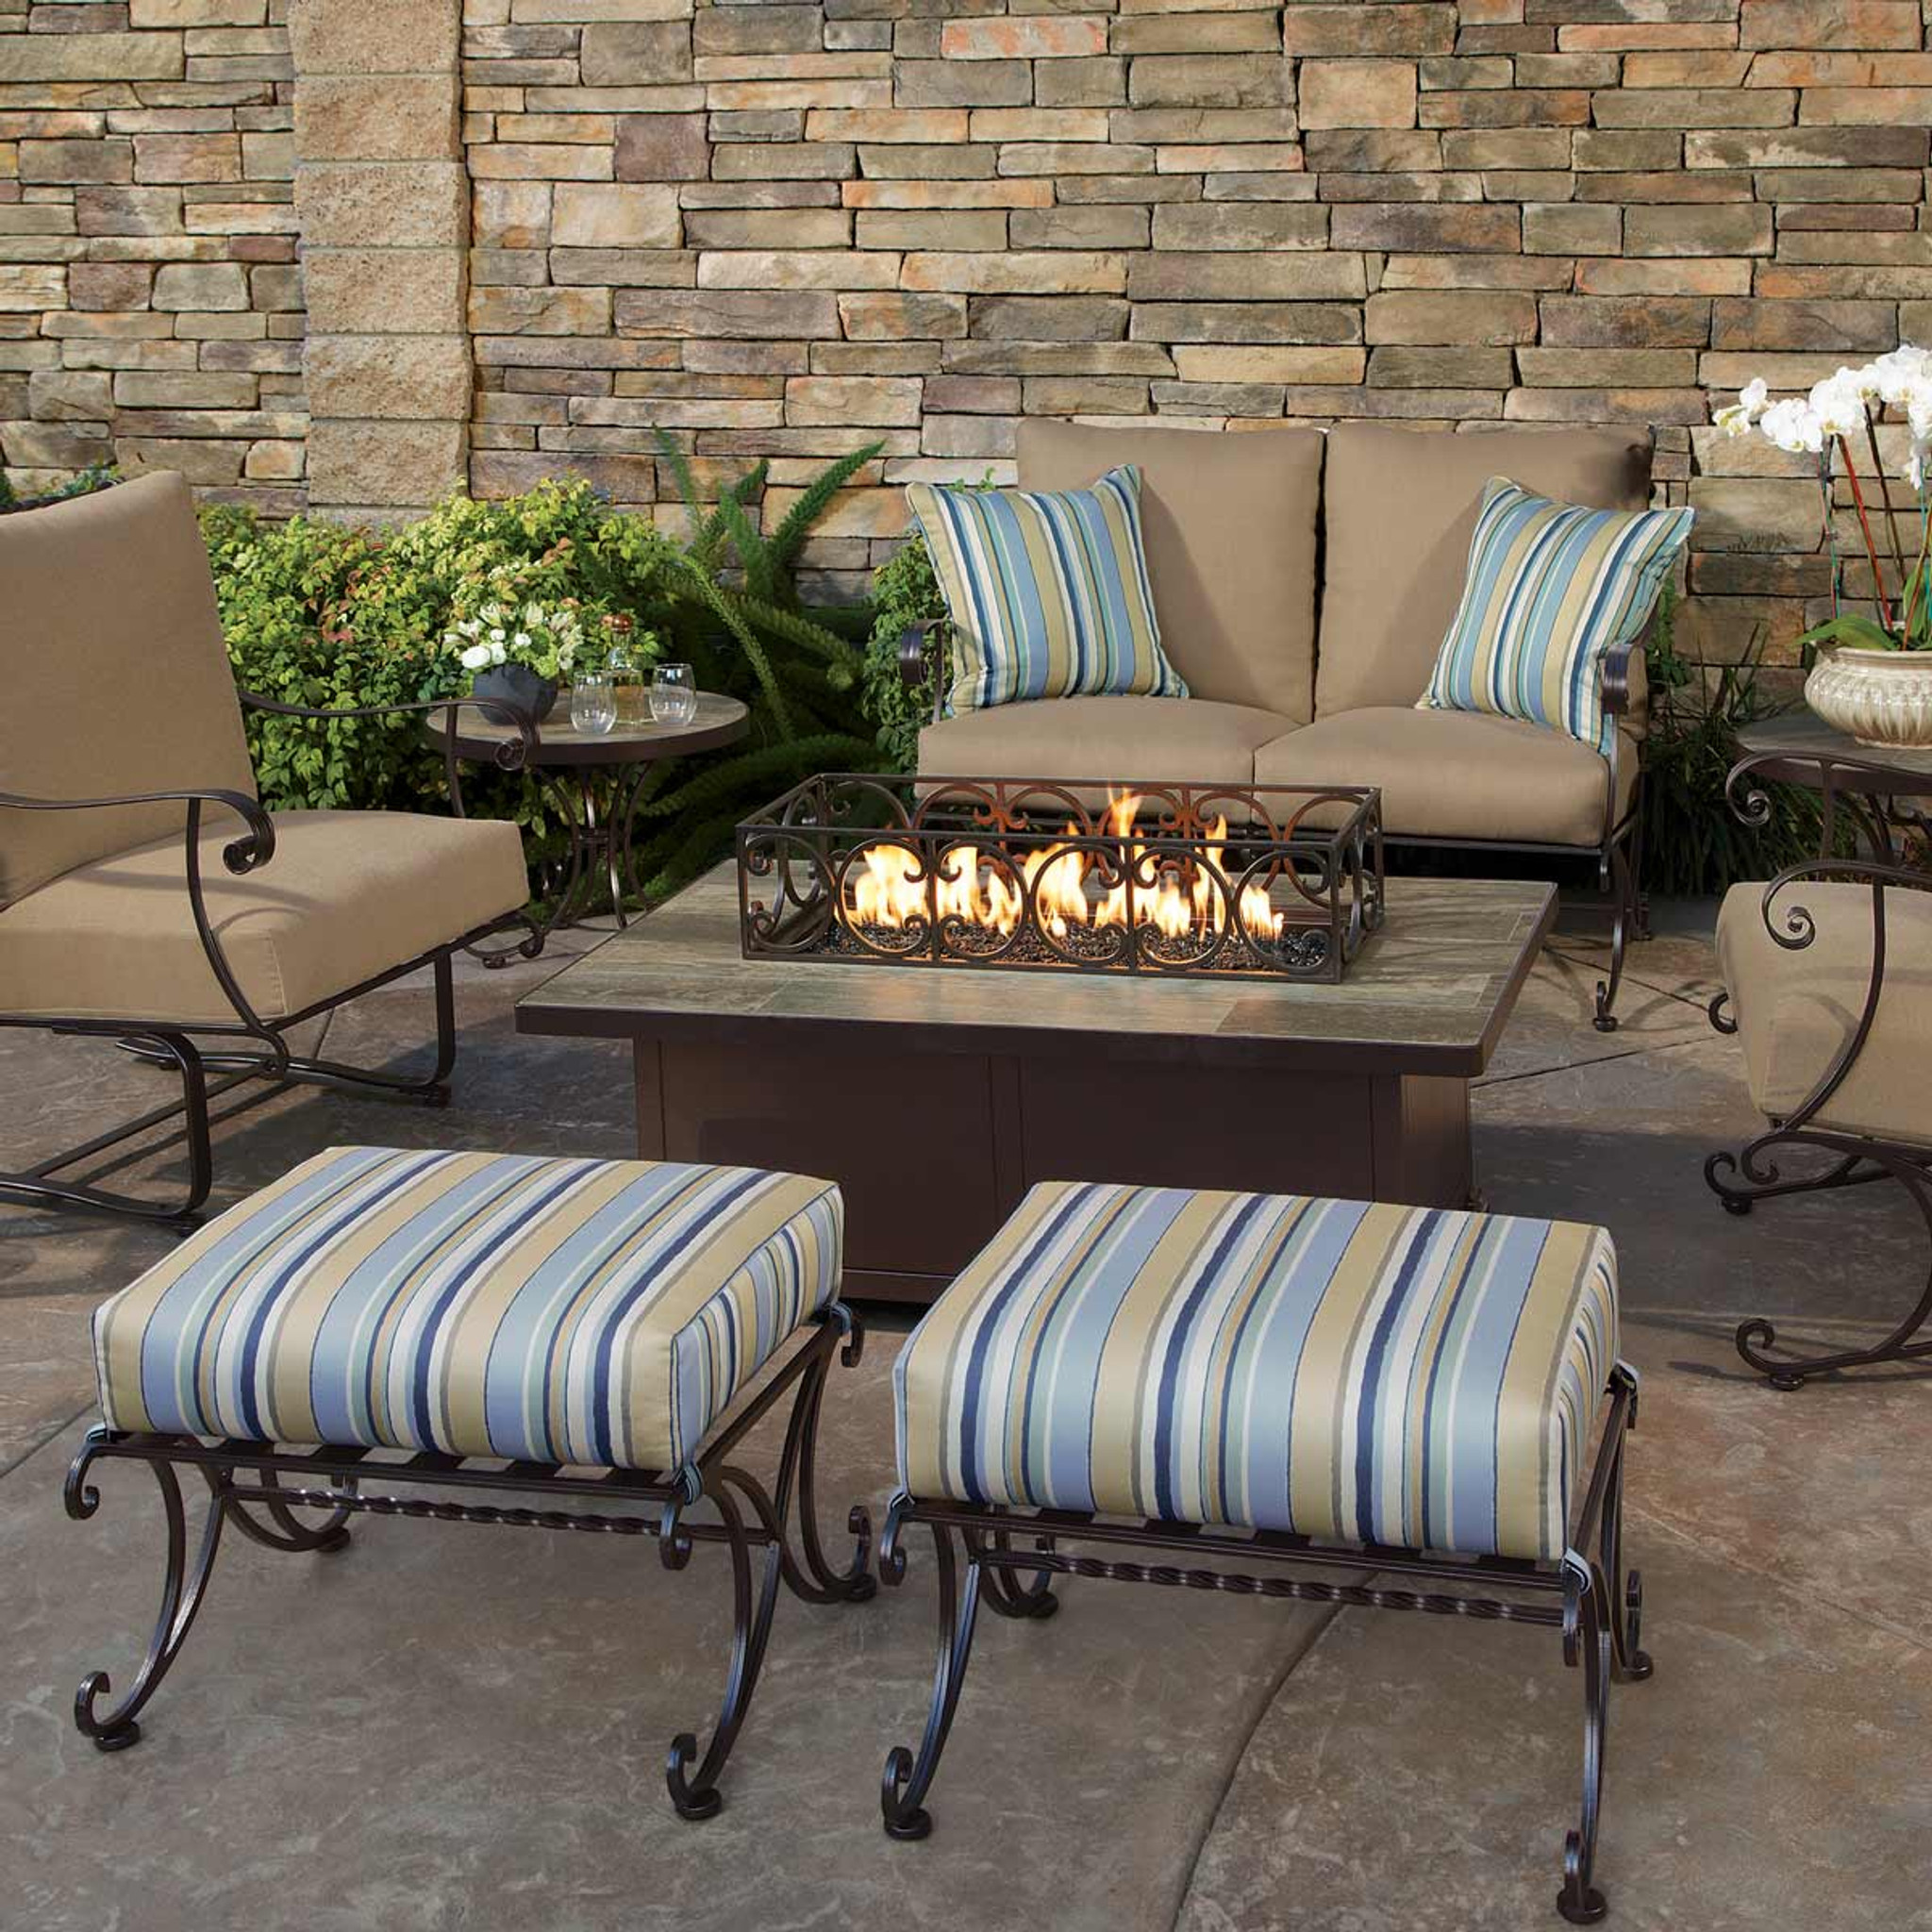 ow_lee-fire_pits_los_angeles-patio_furniture_los_angeles-OW_Lee-Santorini_30in_x_50in_Occasional_Height_Fire_Pit-img.jpg  ... - Santorini 30in X 50in Occasional Height Fire Pit By OW Lee